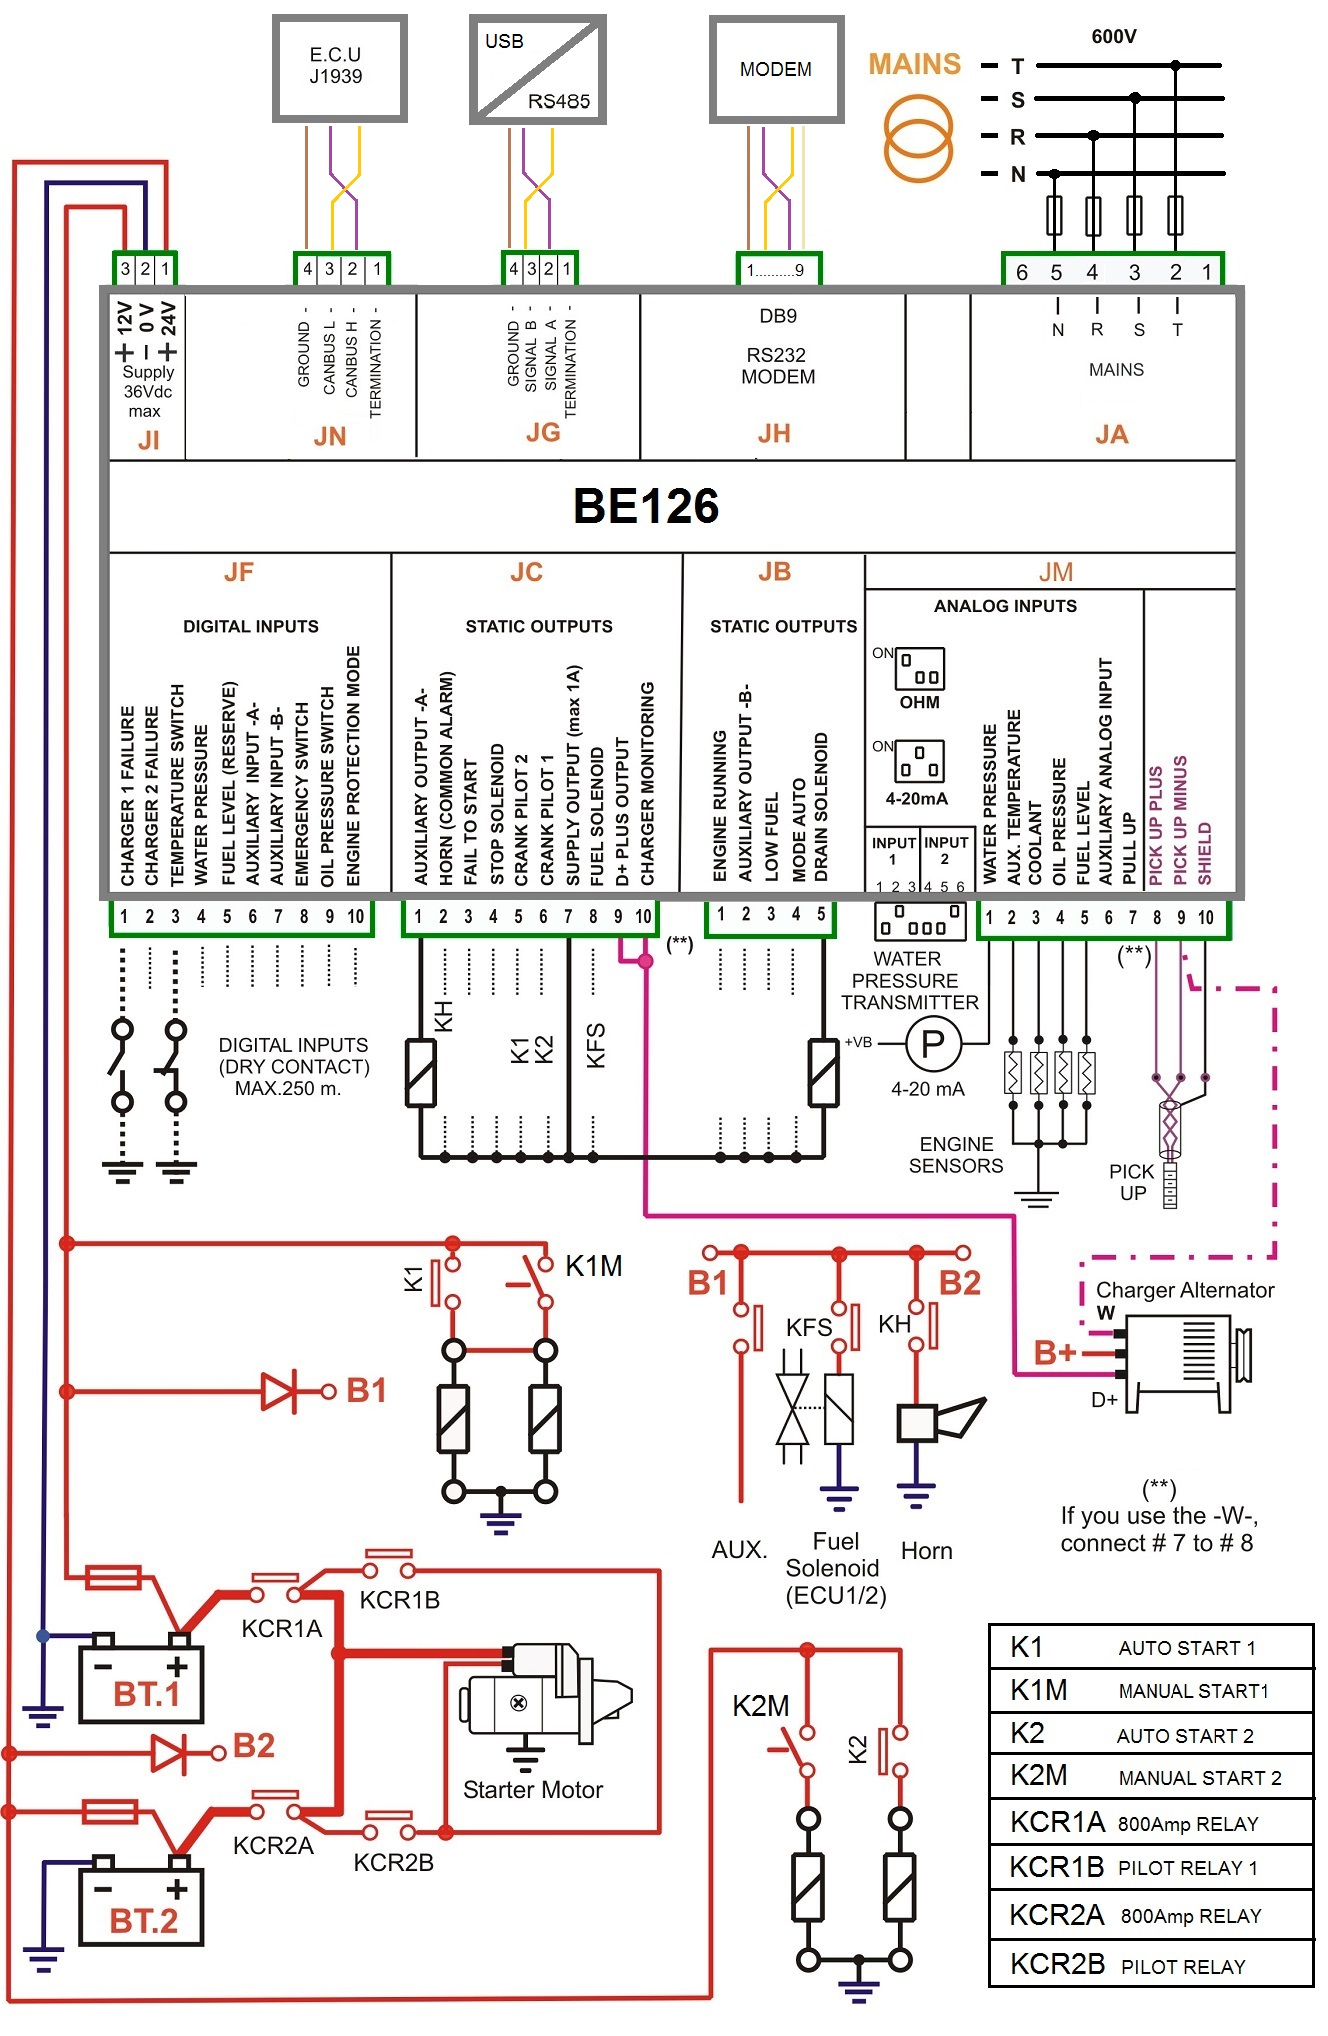 control panel wiring diagram pdf Collection-Electrical Control Panel Wiring Diagram Pdf New Hardinge Hlv Parts List Page Electric Control Panel Wiring 17-j